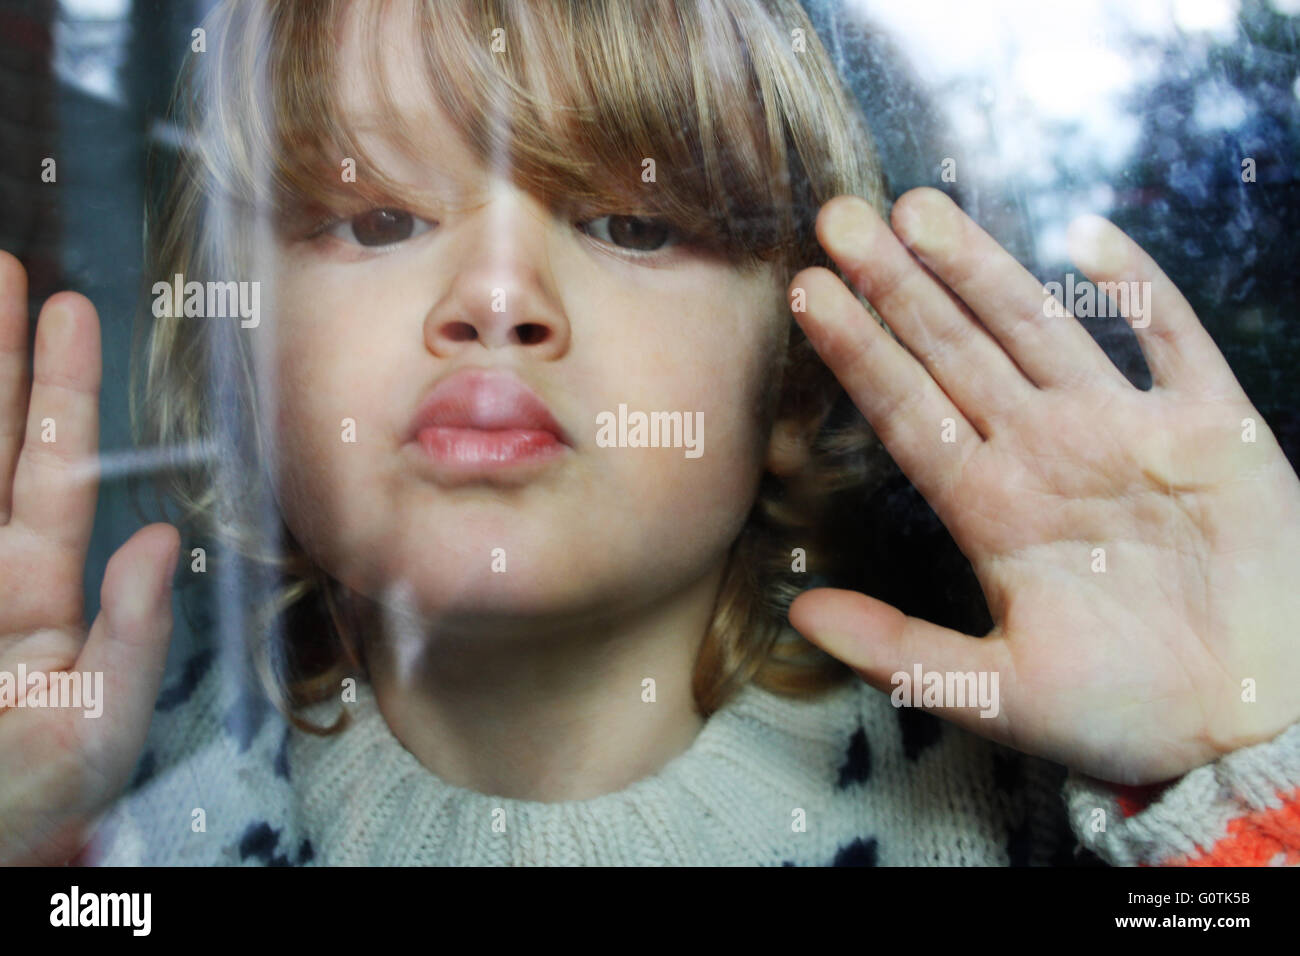 Close-up portrait of boy pressing lips and hands against window - Stock Image